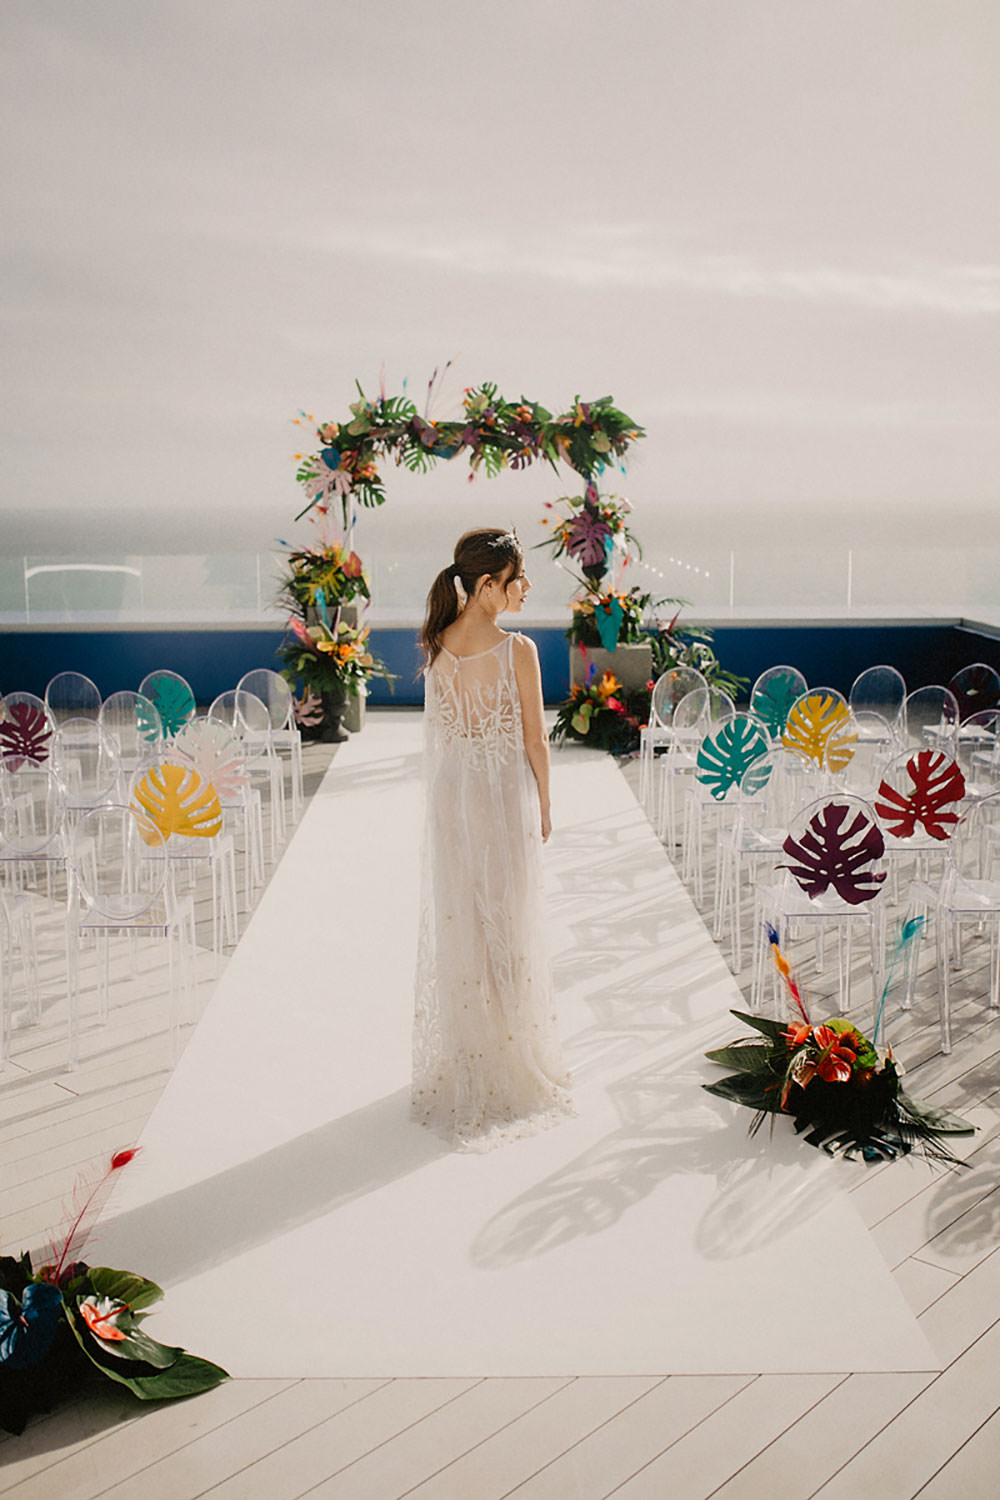 Colorful Destination Elopement Bride Headpiece Aisle Ceremony Arch Palm Leaves | Tropical Industrial Canary Islands Wedding Ideas Moana Photography